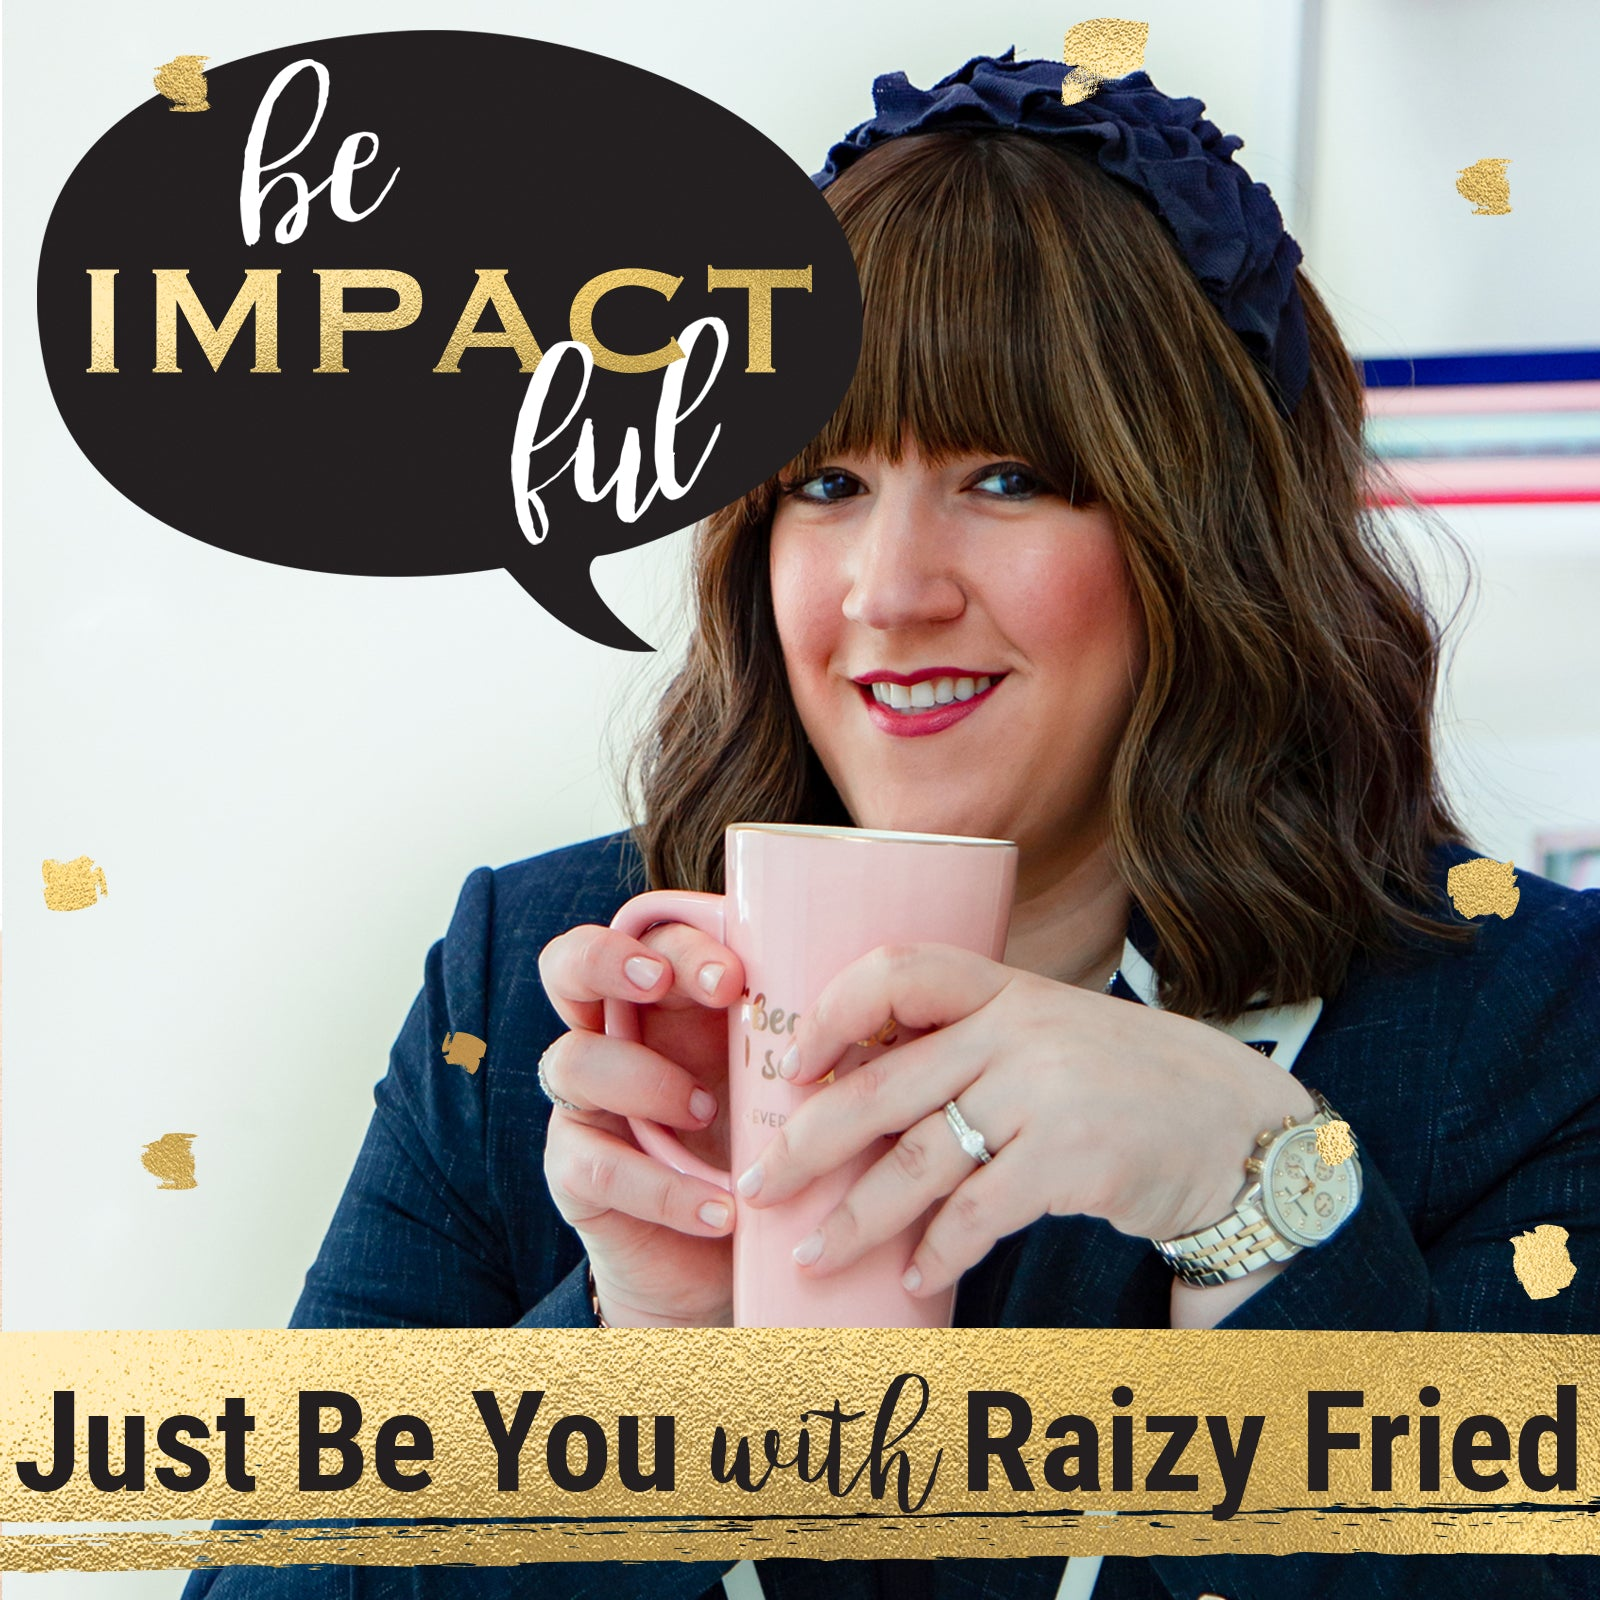 Just Be You with Raizy Fried